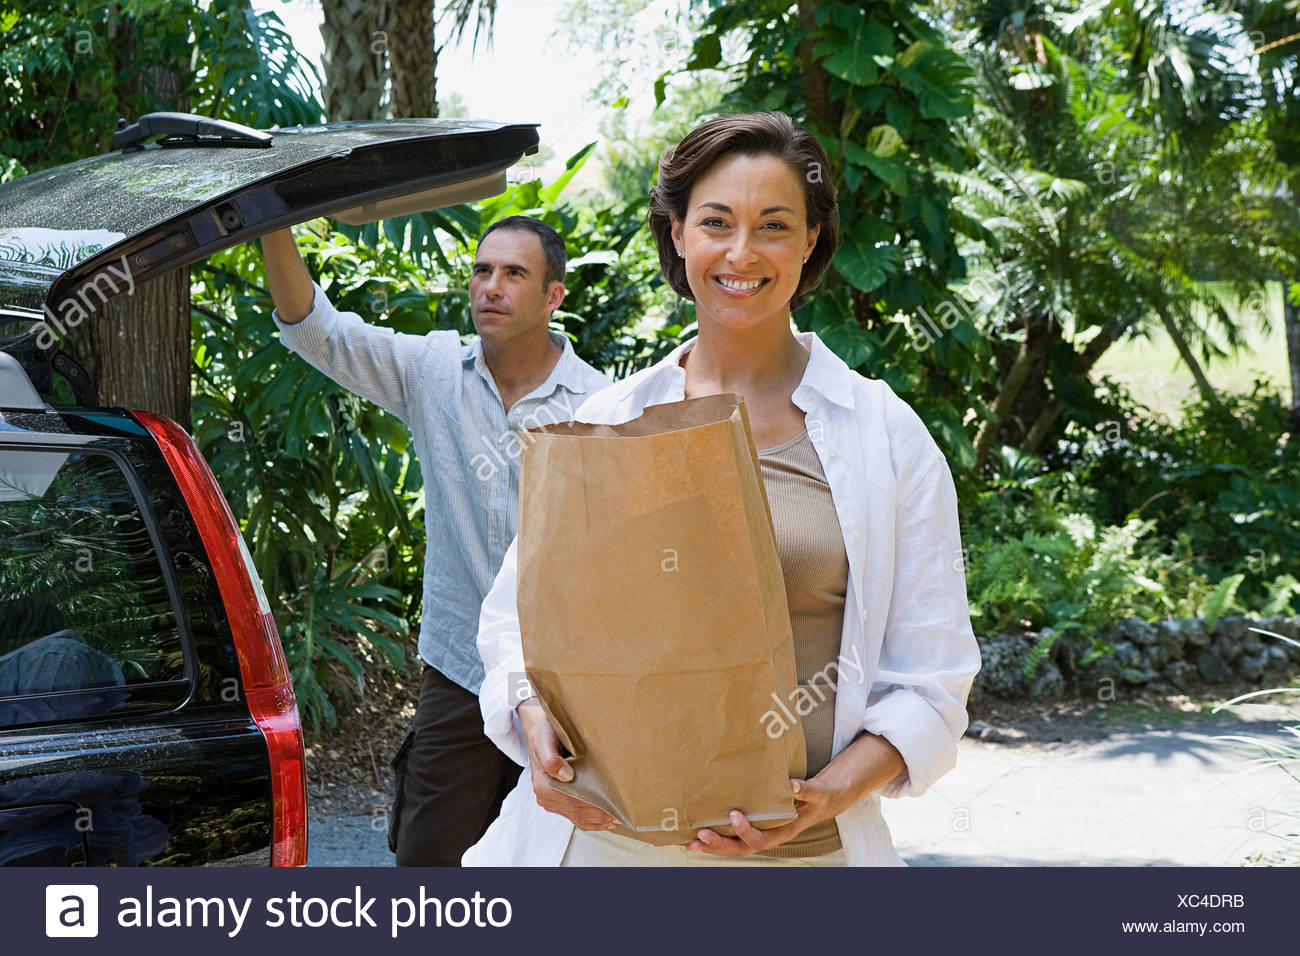 Couple with groceries - Stock Image